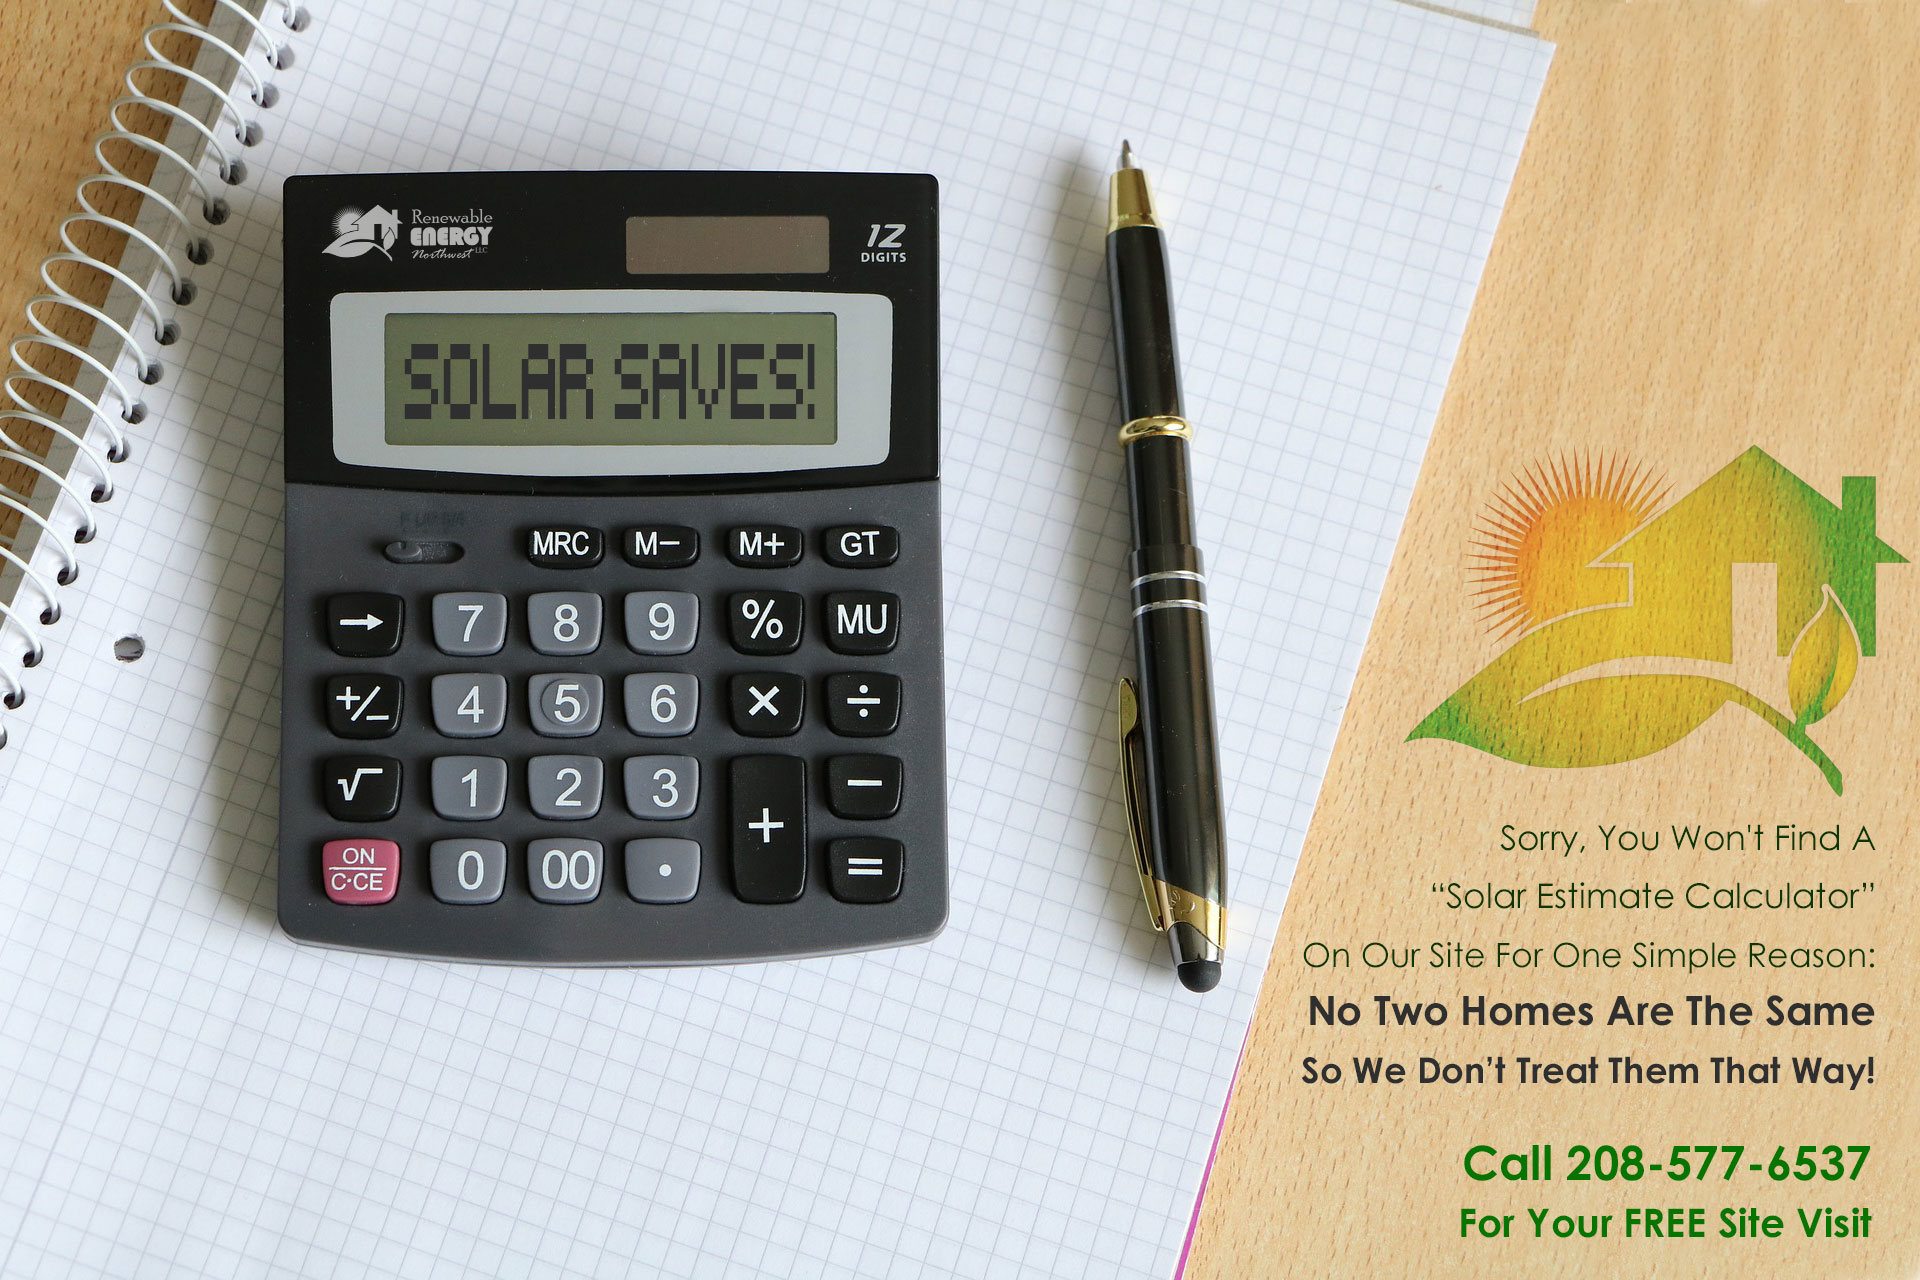 You Won't Find A Solar Calculator Here!